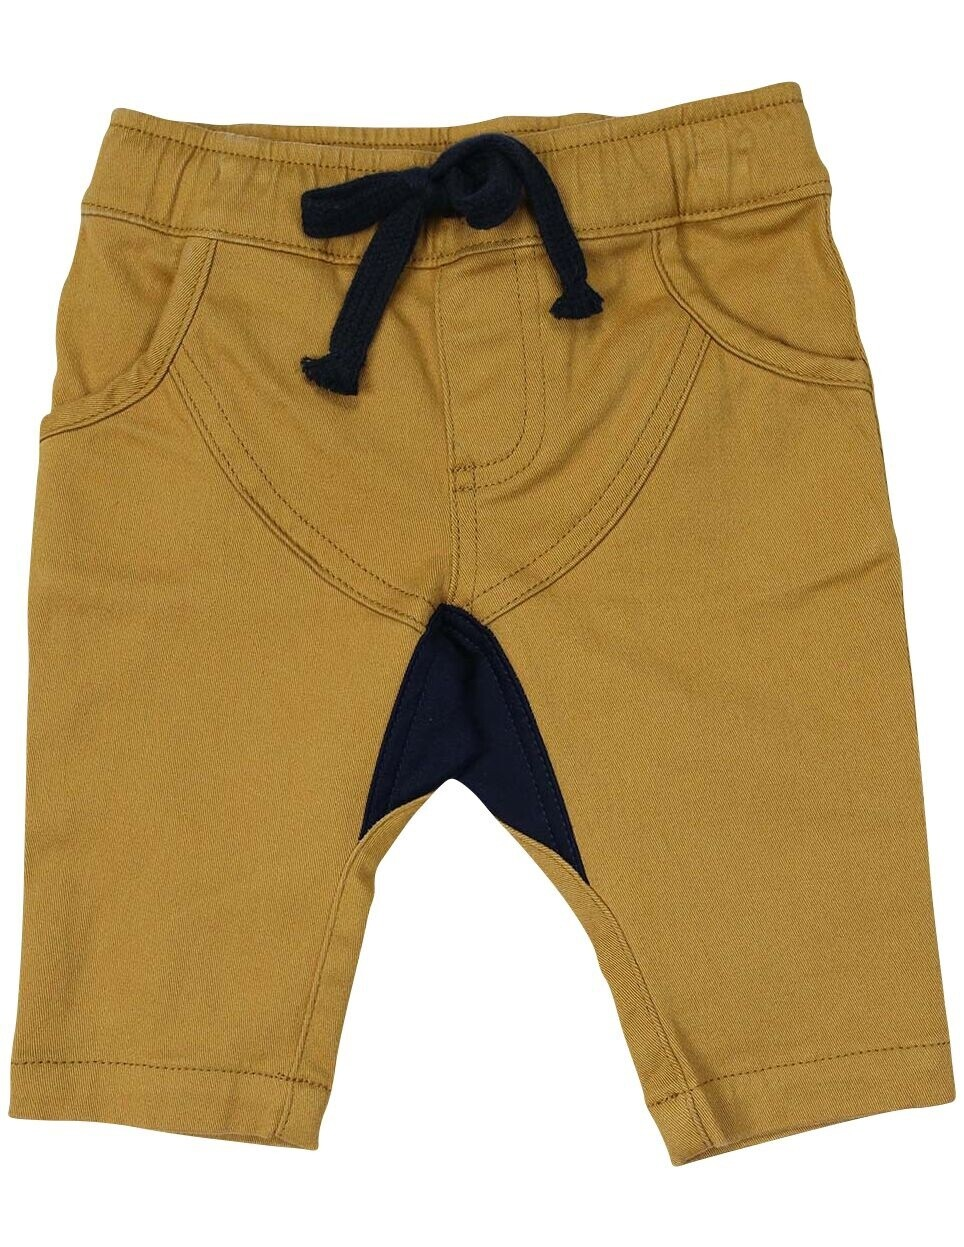 Aussie Ute Drop Crotch Chinos